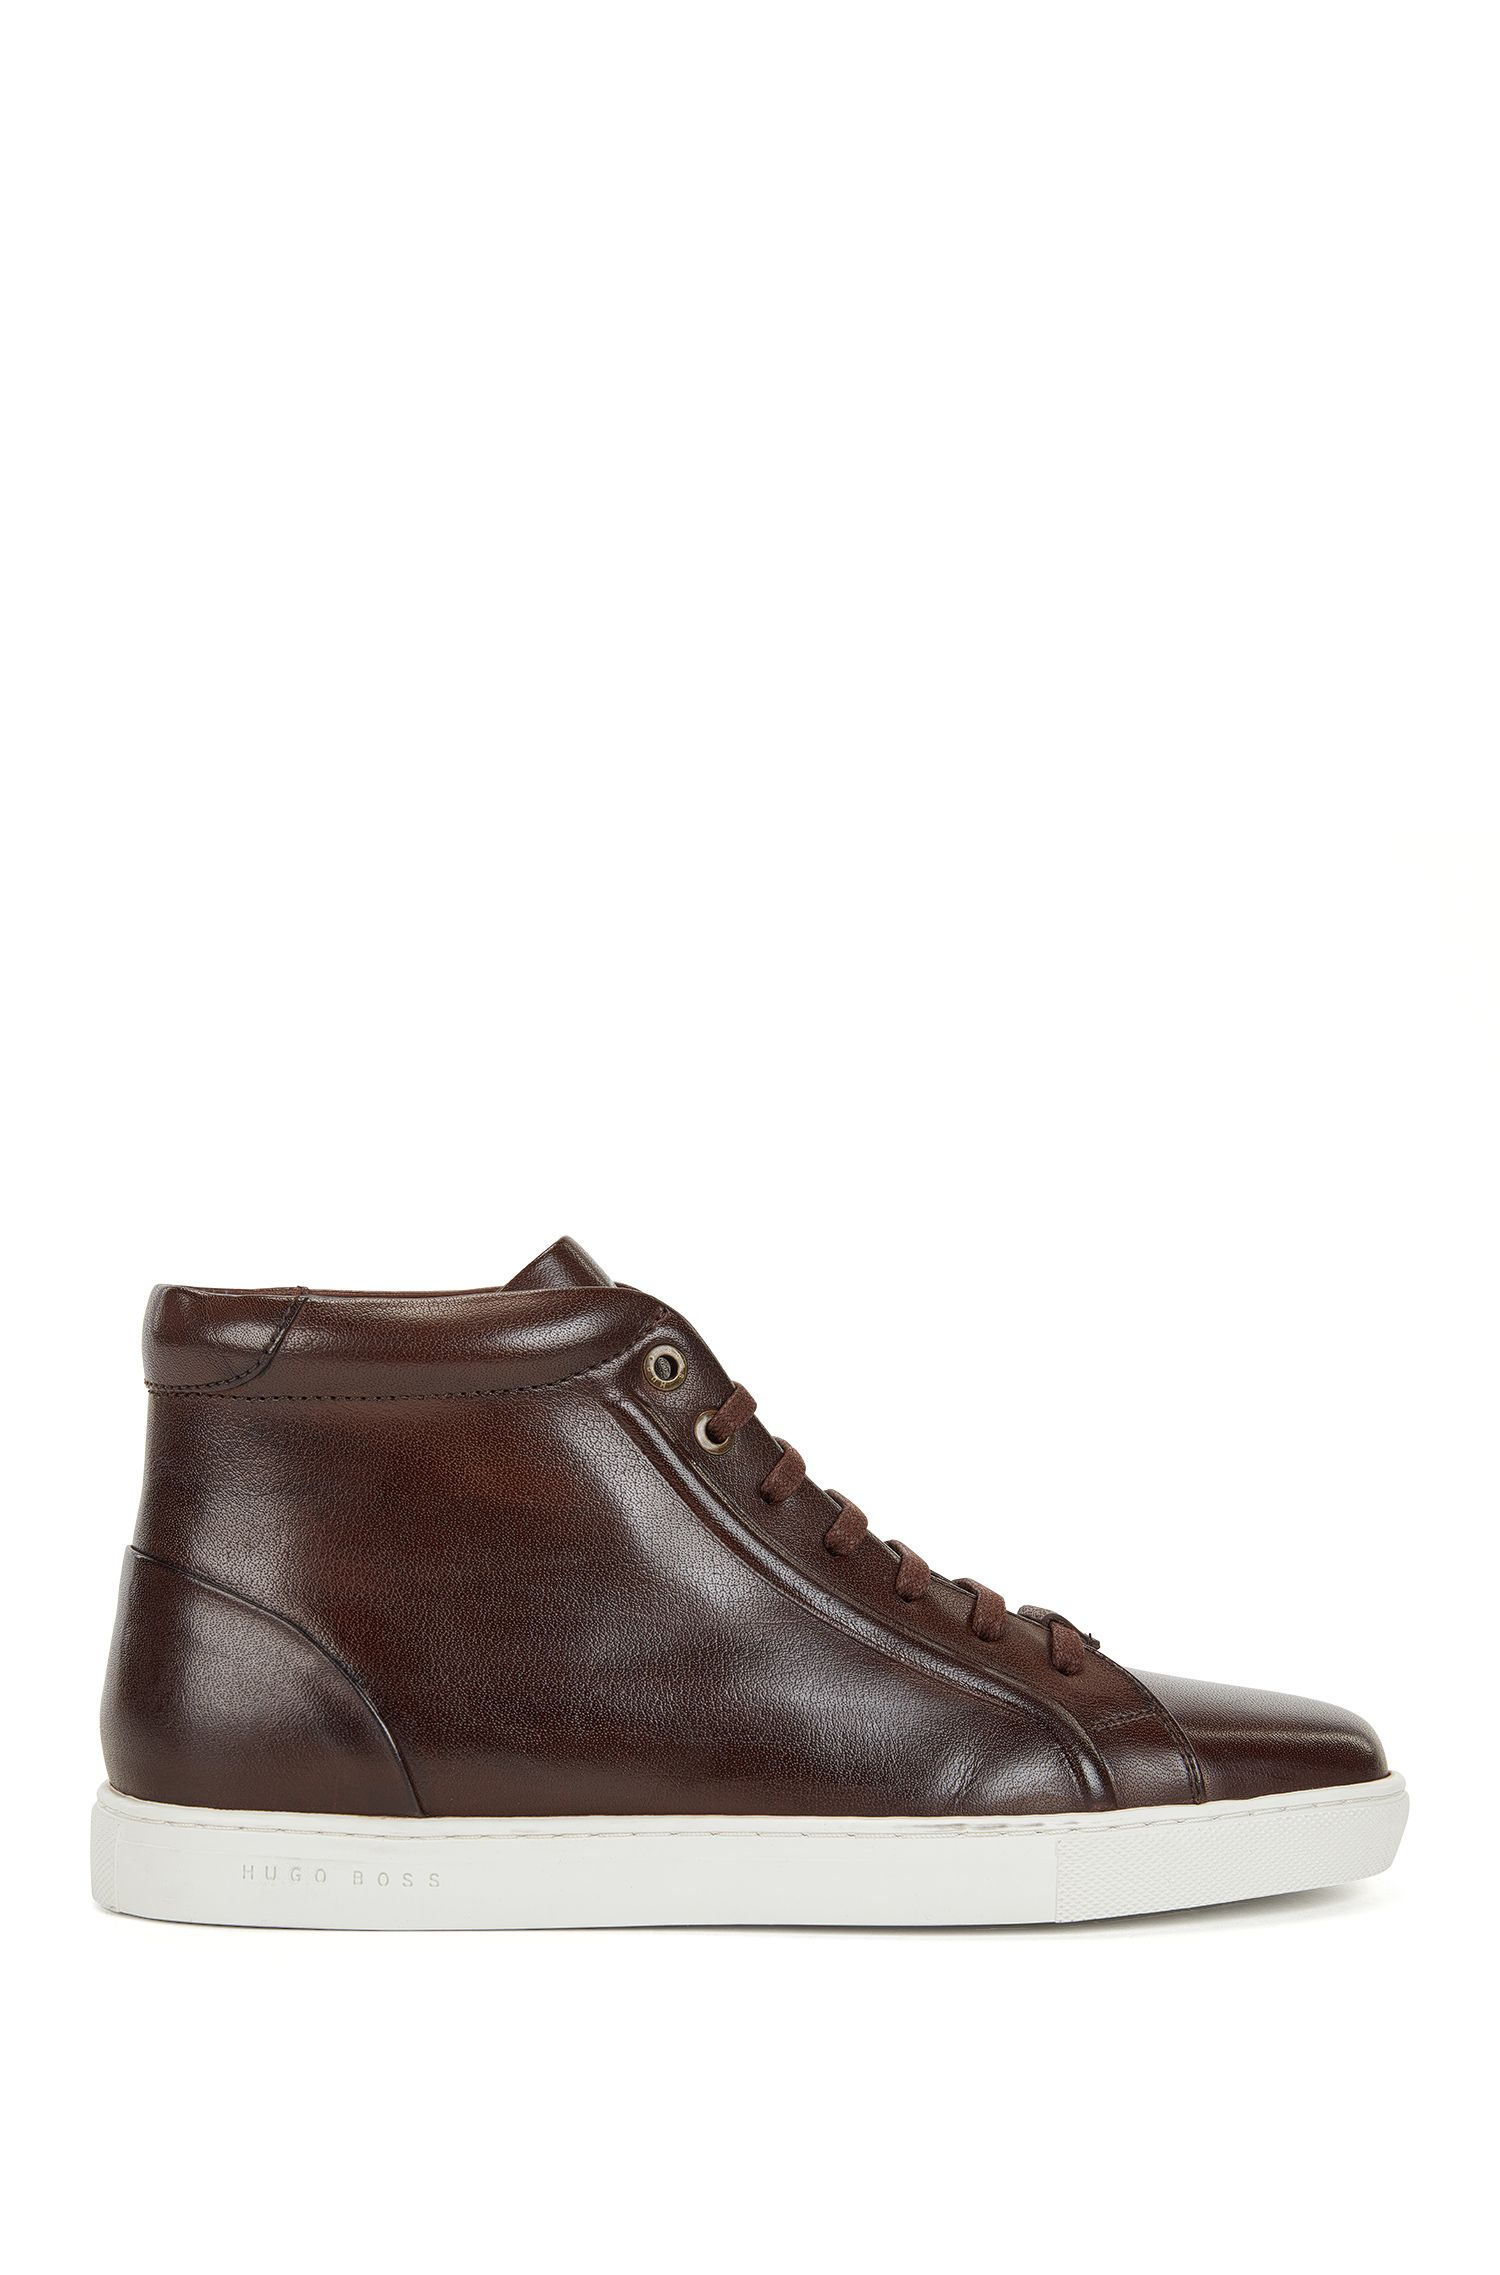 Sneakers high-top stringate in pelle brunita